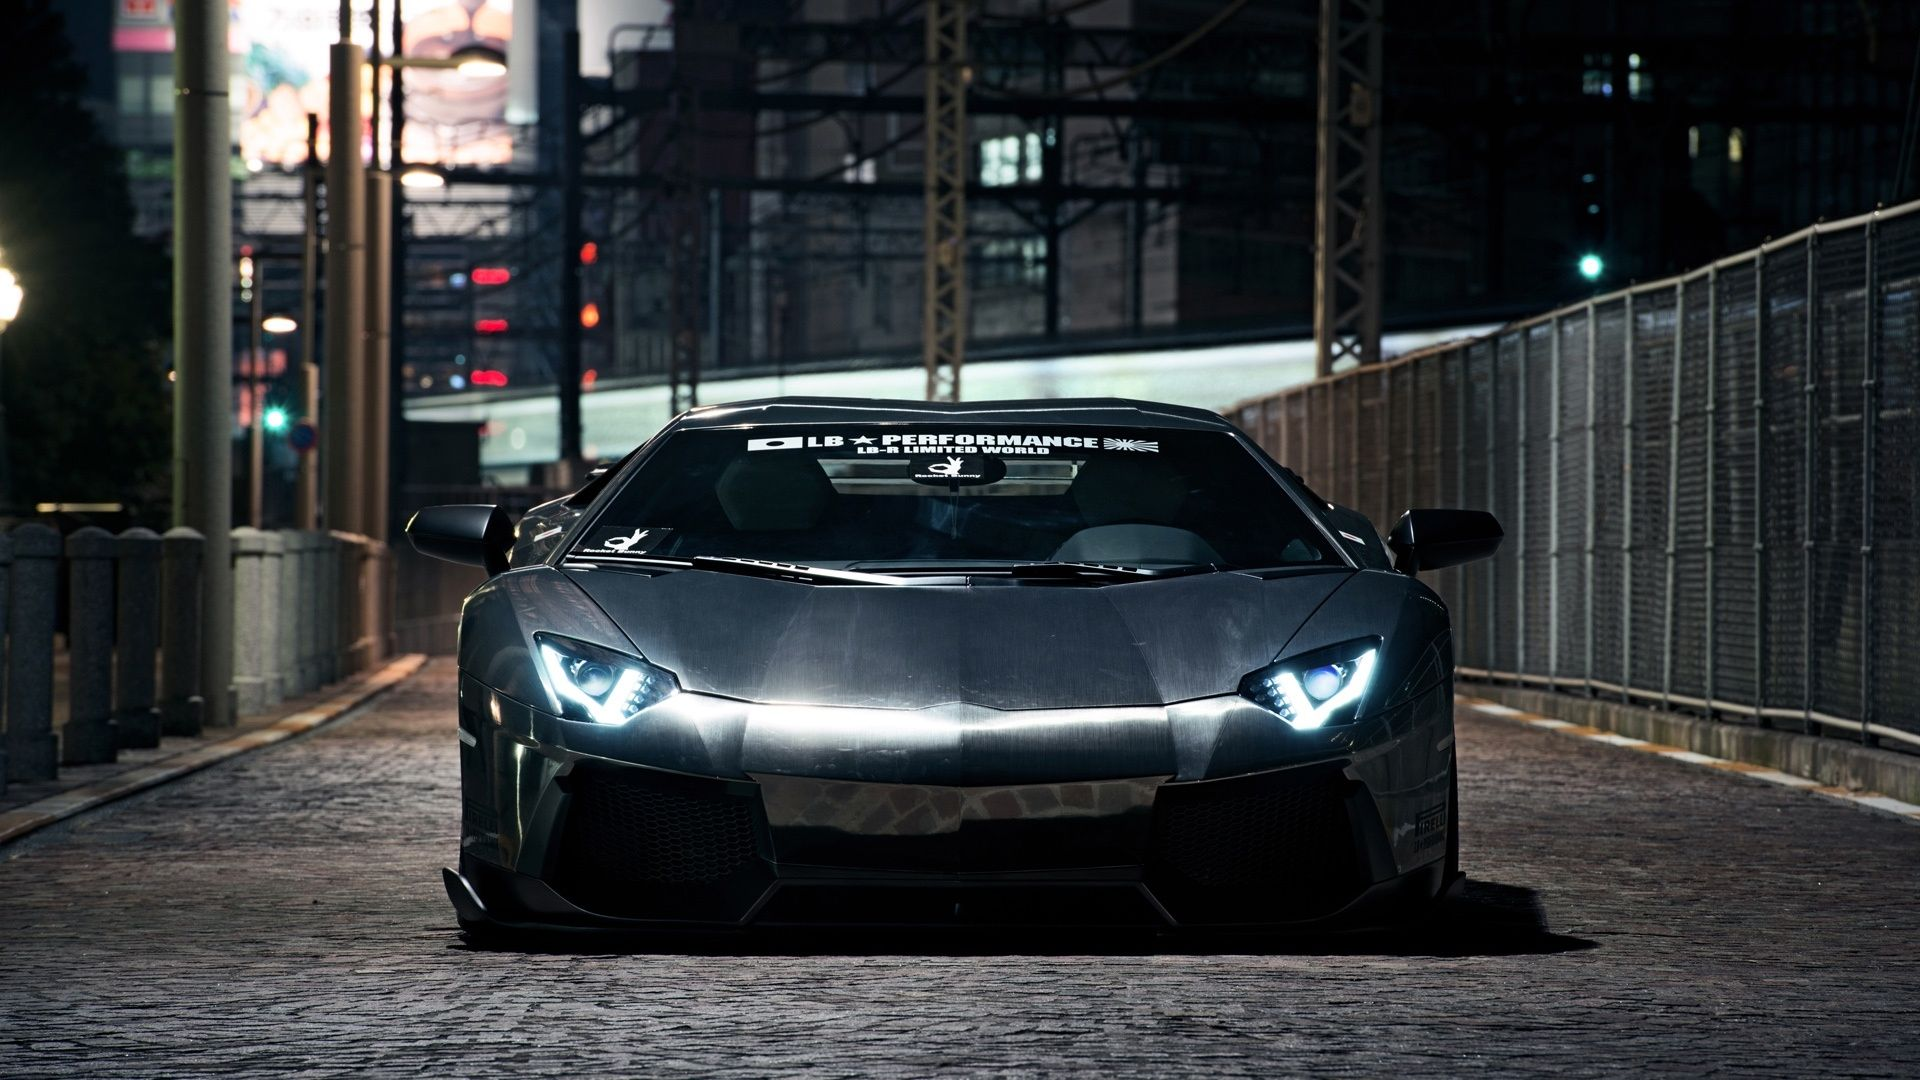 Lamborghini Aventador High Resolution Wallpapers With Images